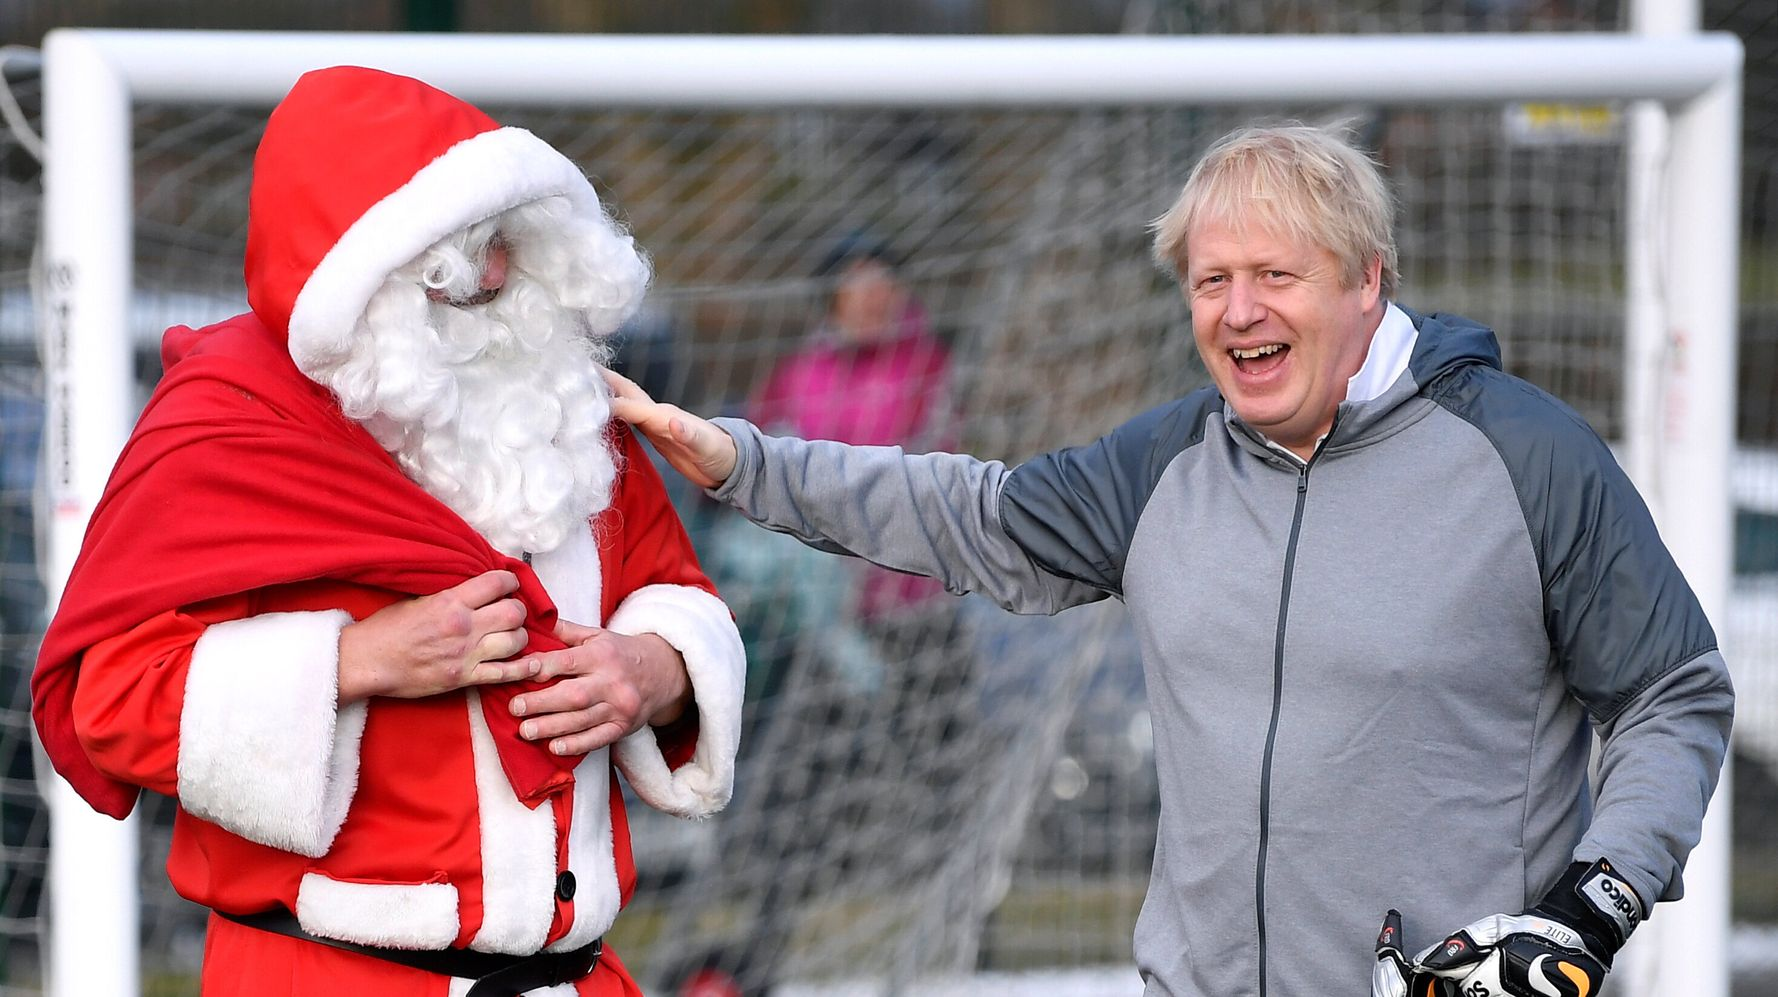 So, Is Christmas Cancelled? Coronavirus Experts Make Their Predictions